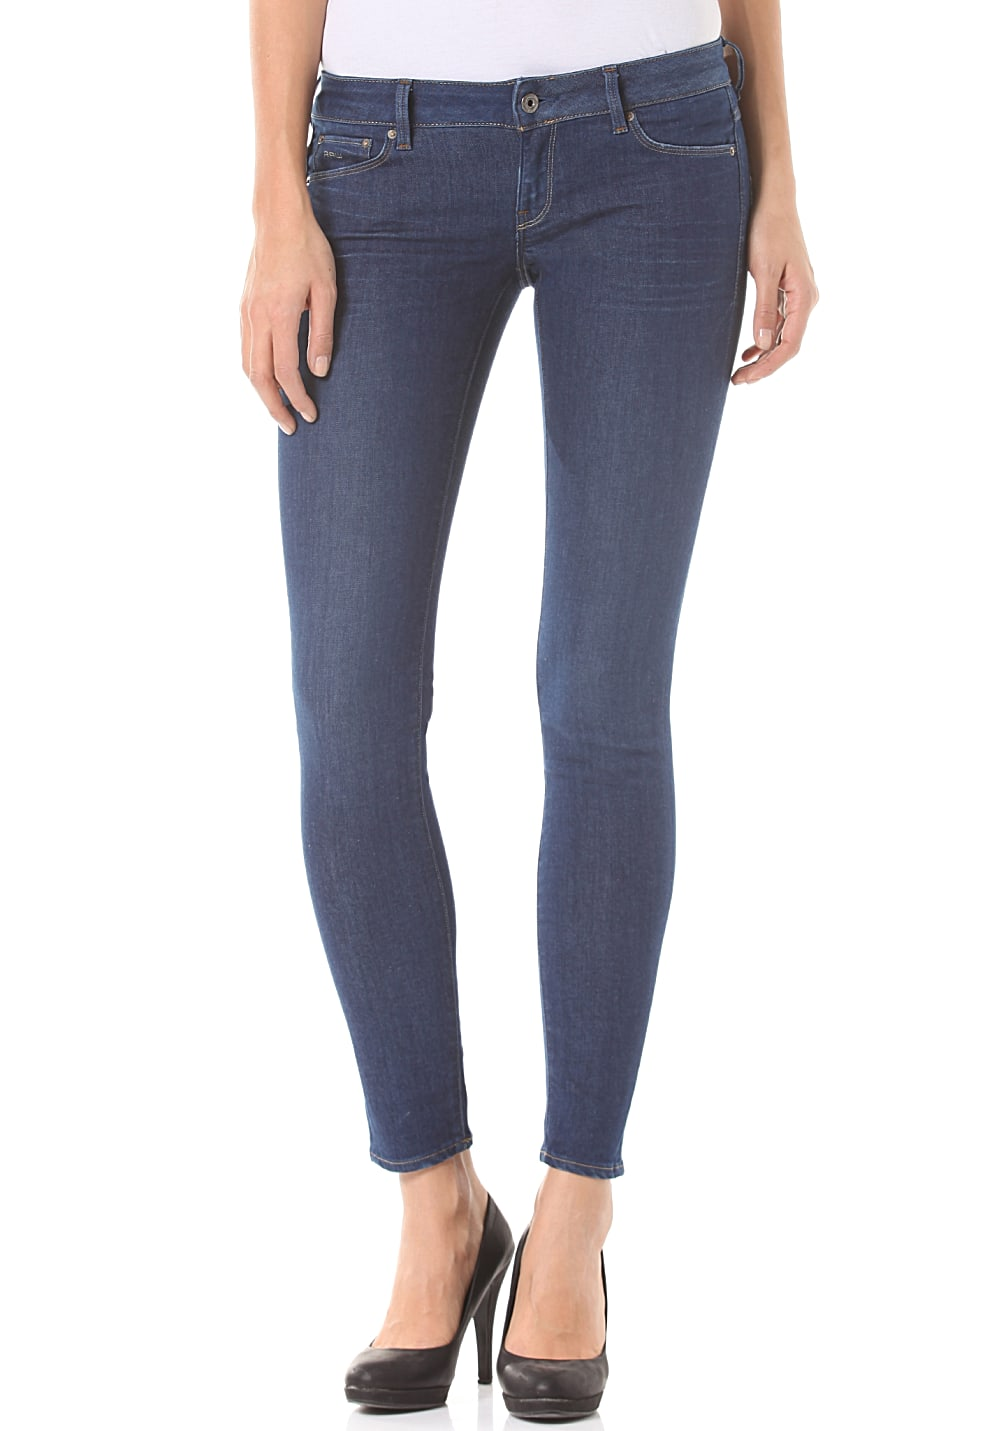 G-Star 3301 Low Super Skinny Benwick Stretch - Jeans für Damen Blau